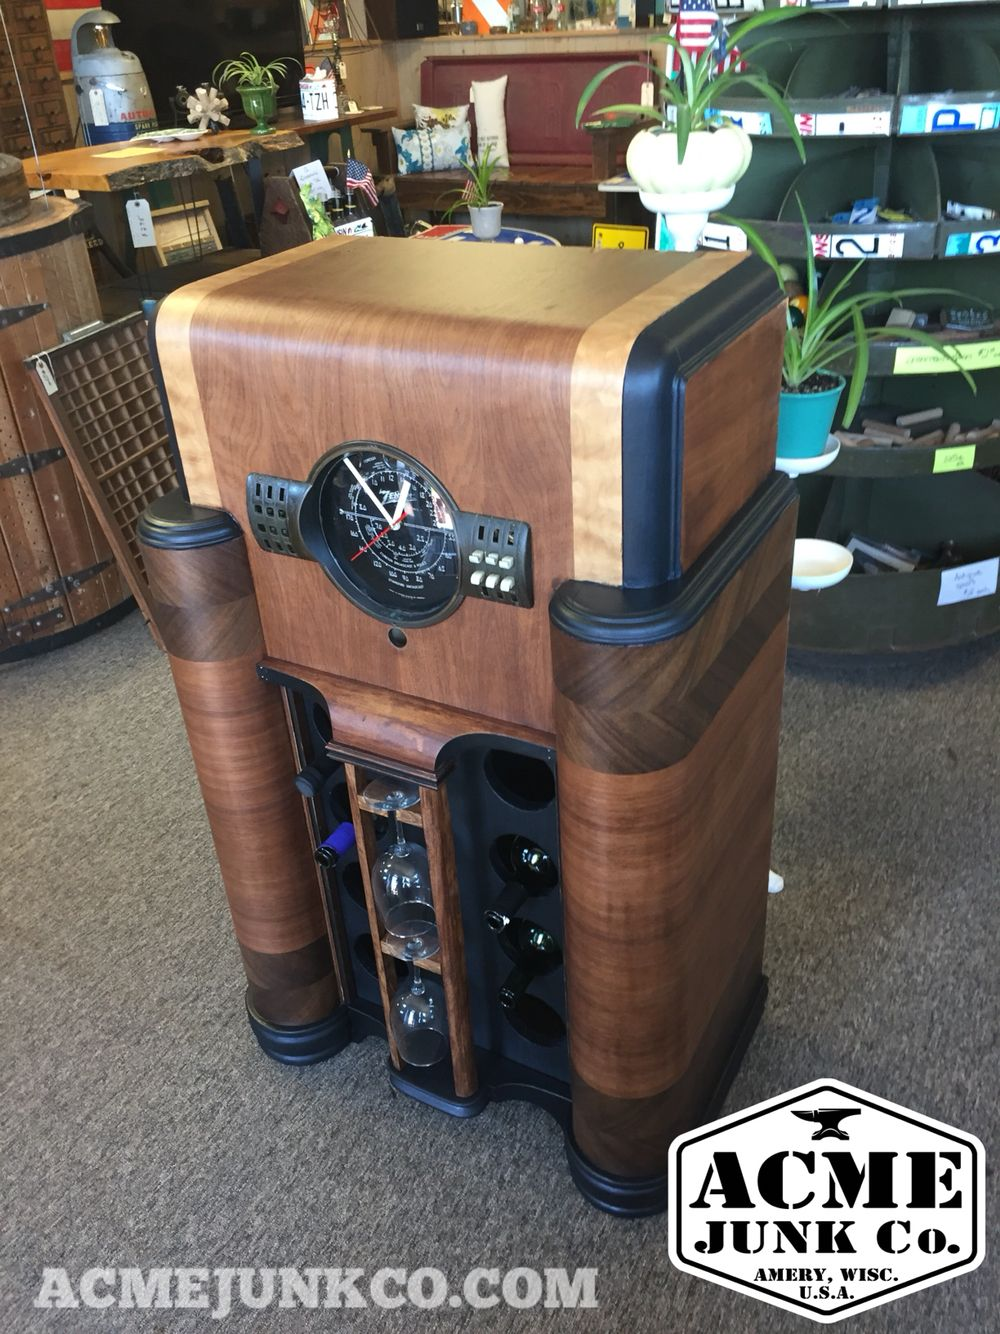 Antique Zenith Radio Cabinet We Converted Into An 8 Bottle Wine Rack And Working Clock Vintage Radio Cabinet Antique Radio Antique Radio Cabinet